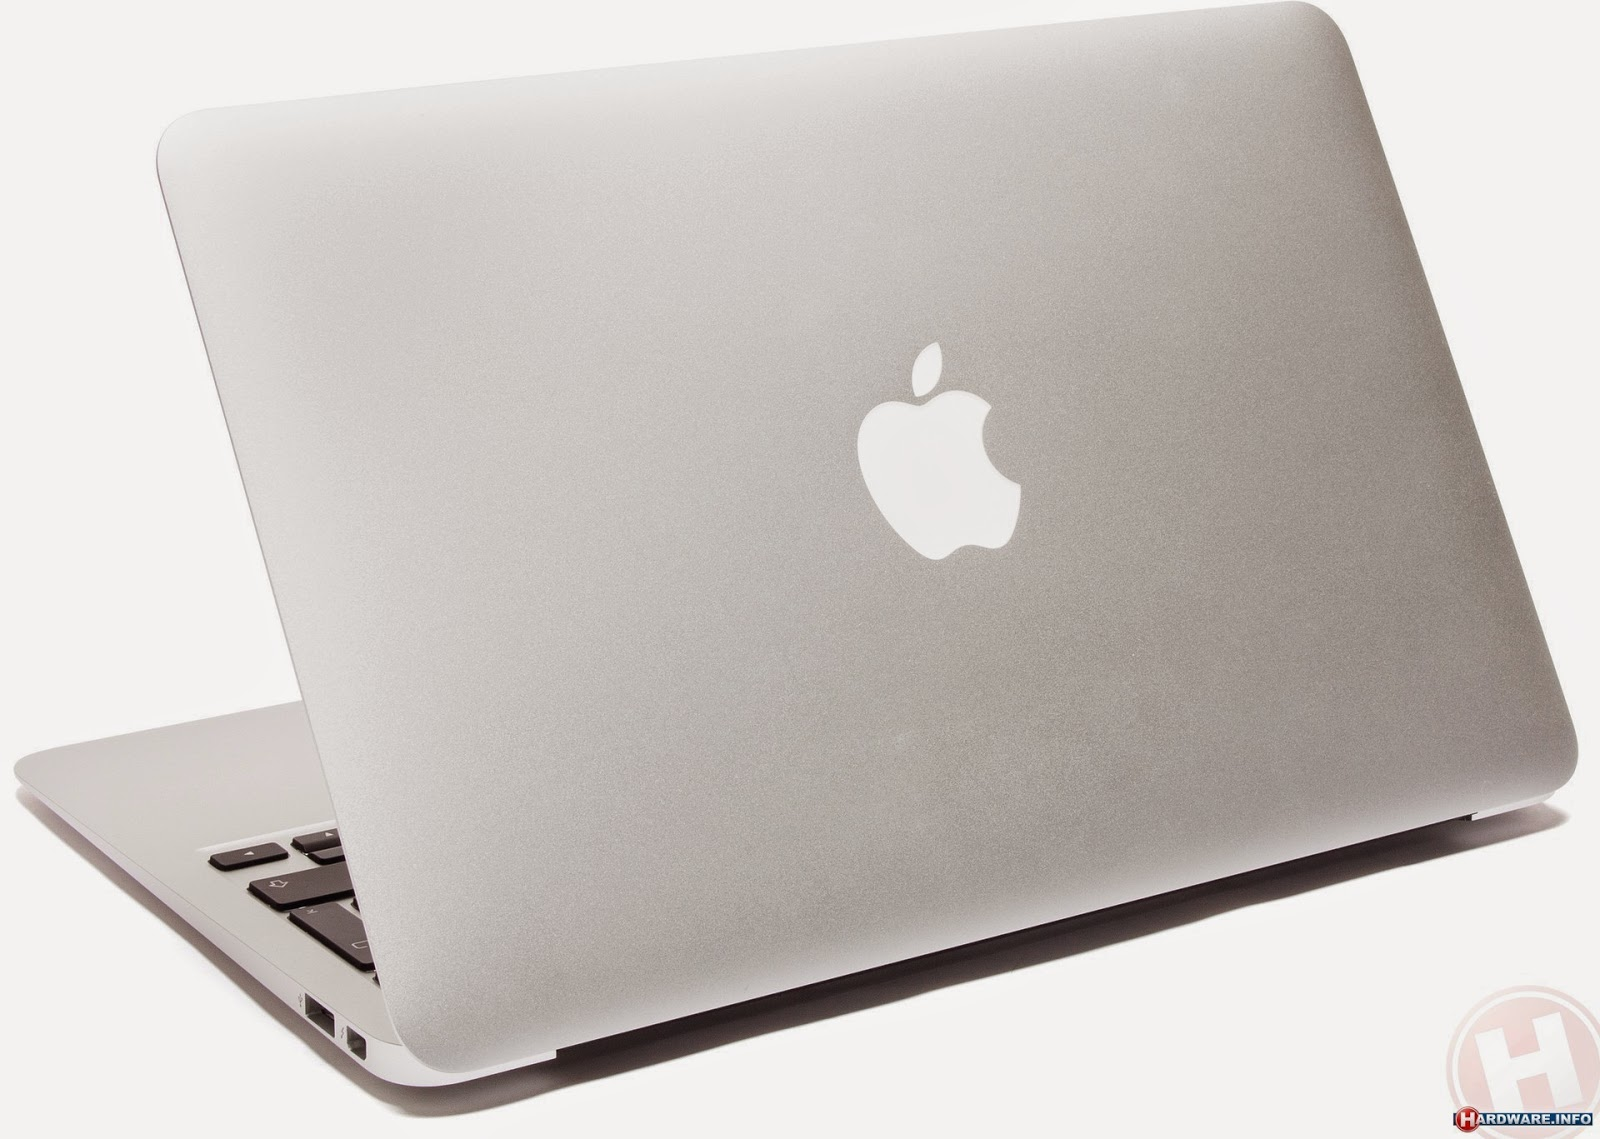 Apple Laptop Apple Macbook Laptop Price In Nigeria Macbook Pro And